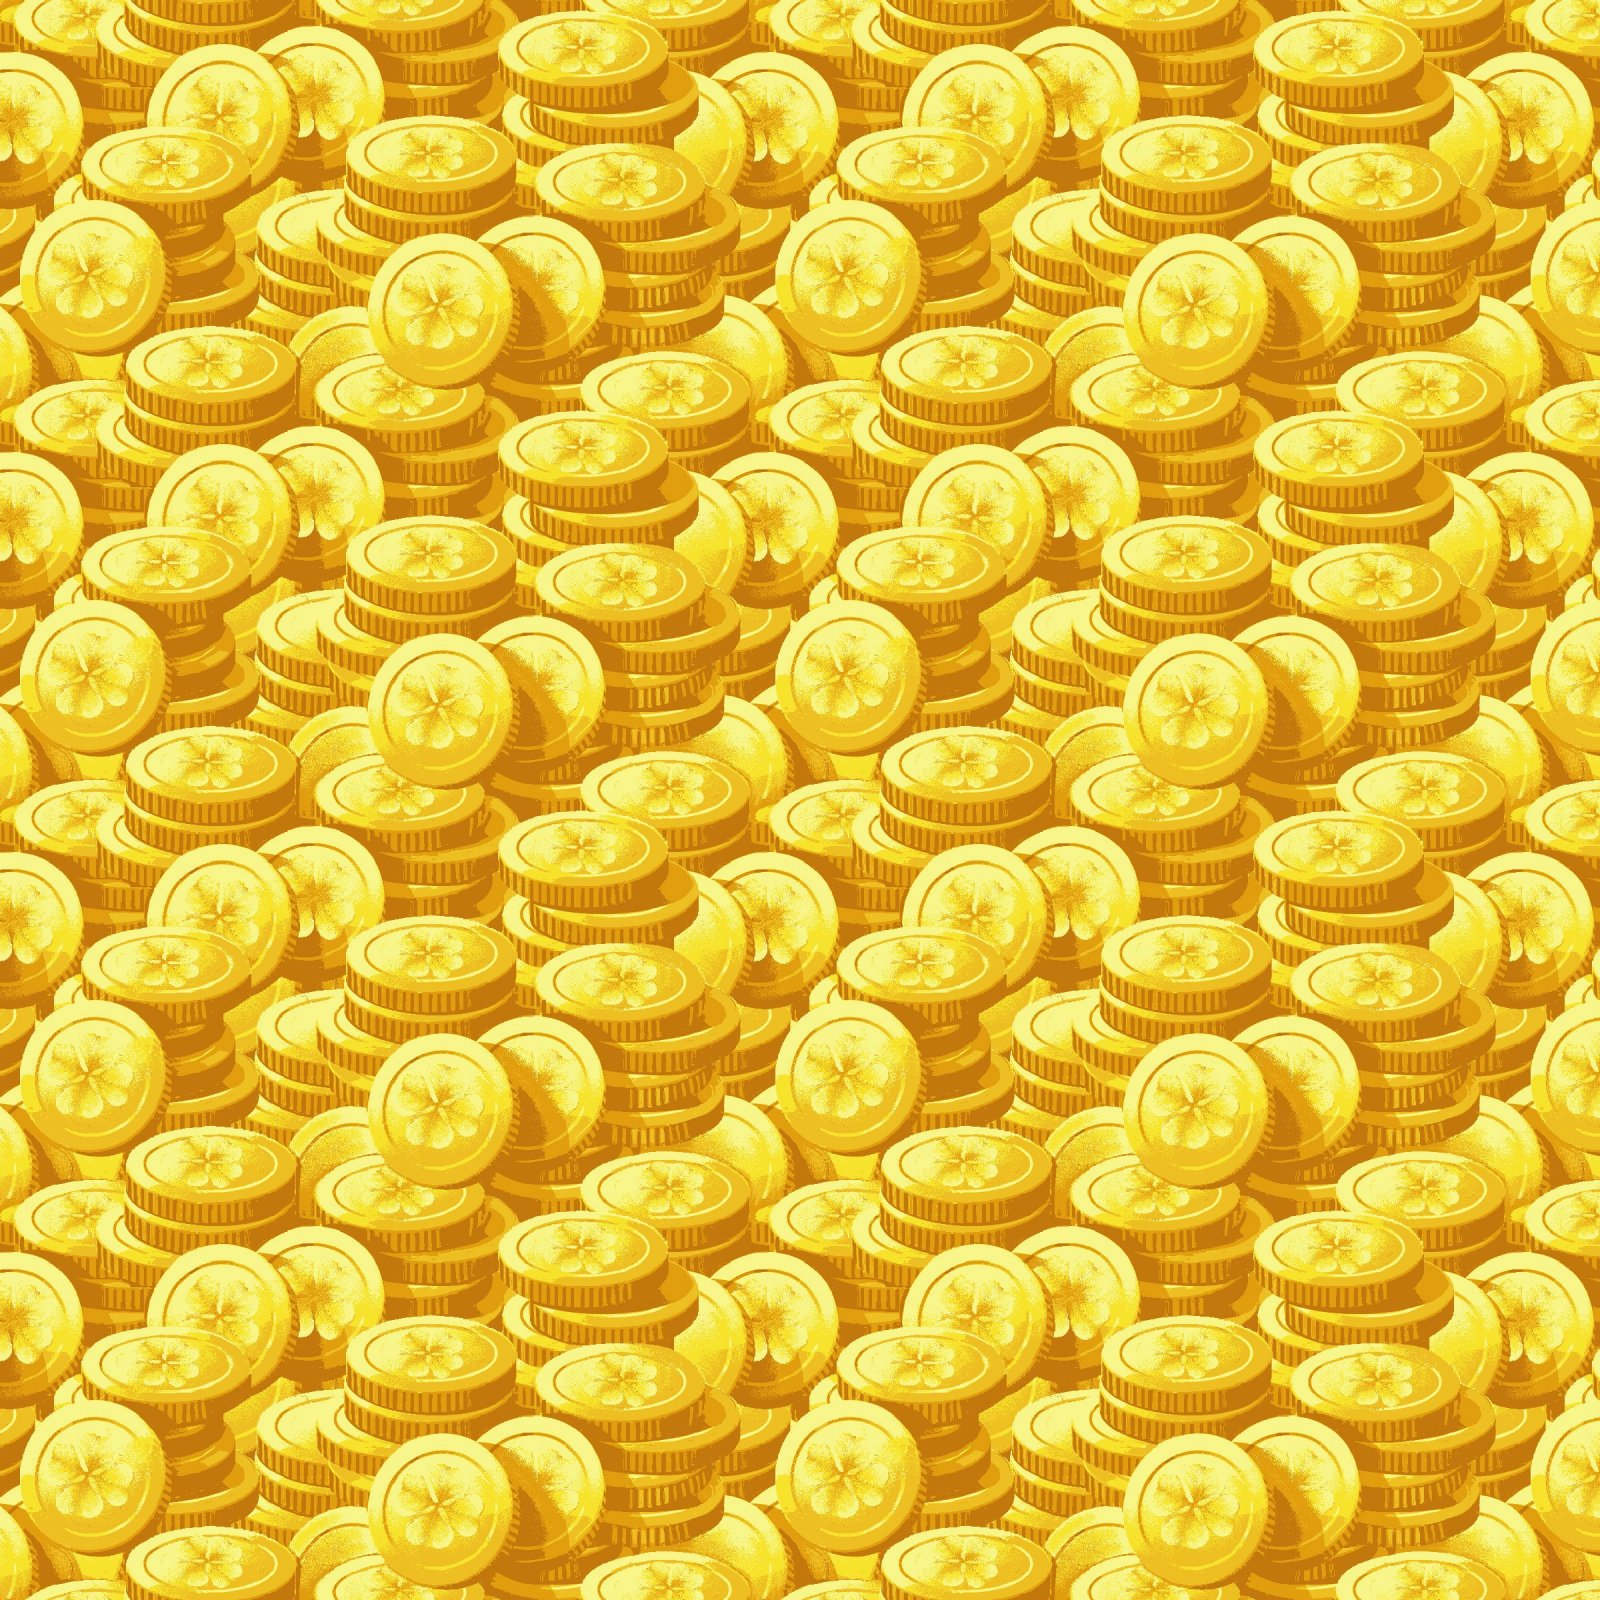 HG-Pot of Gold 9366-44 Yellow - Gold Coins